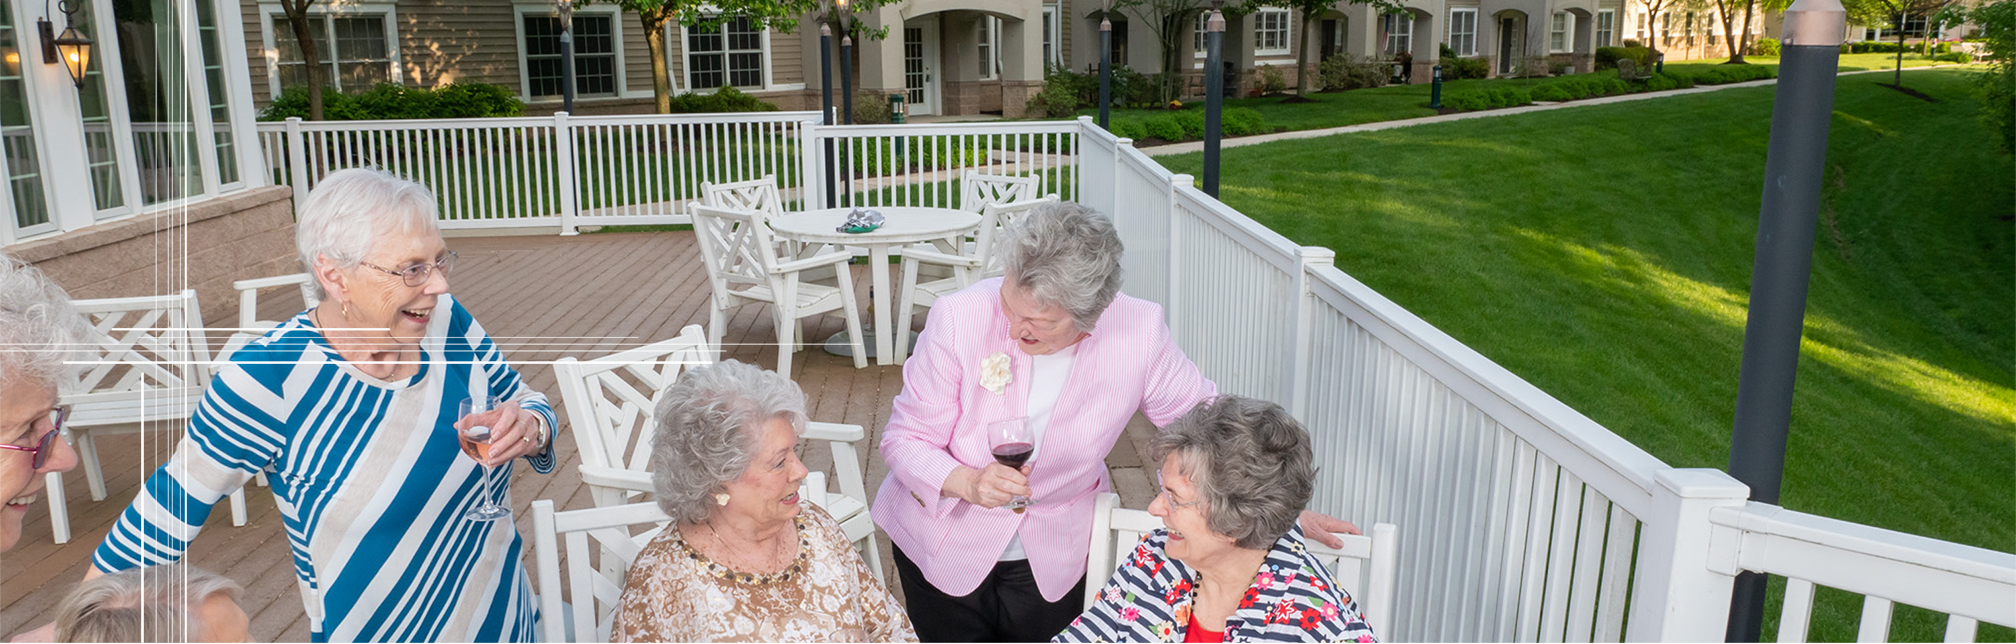 Older ladies enjoying a glass of wine at our senior living community.